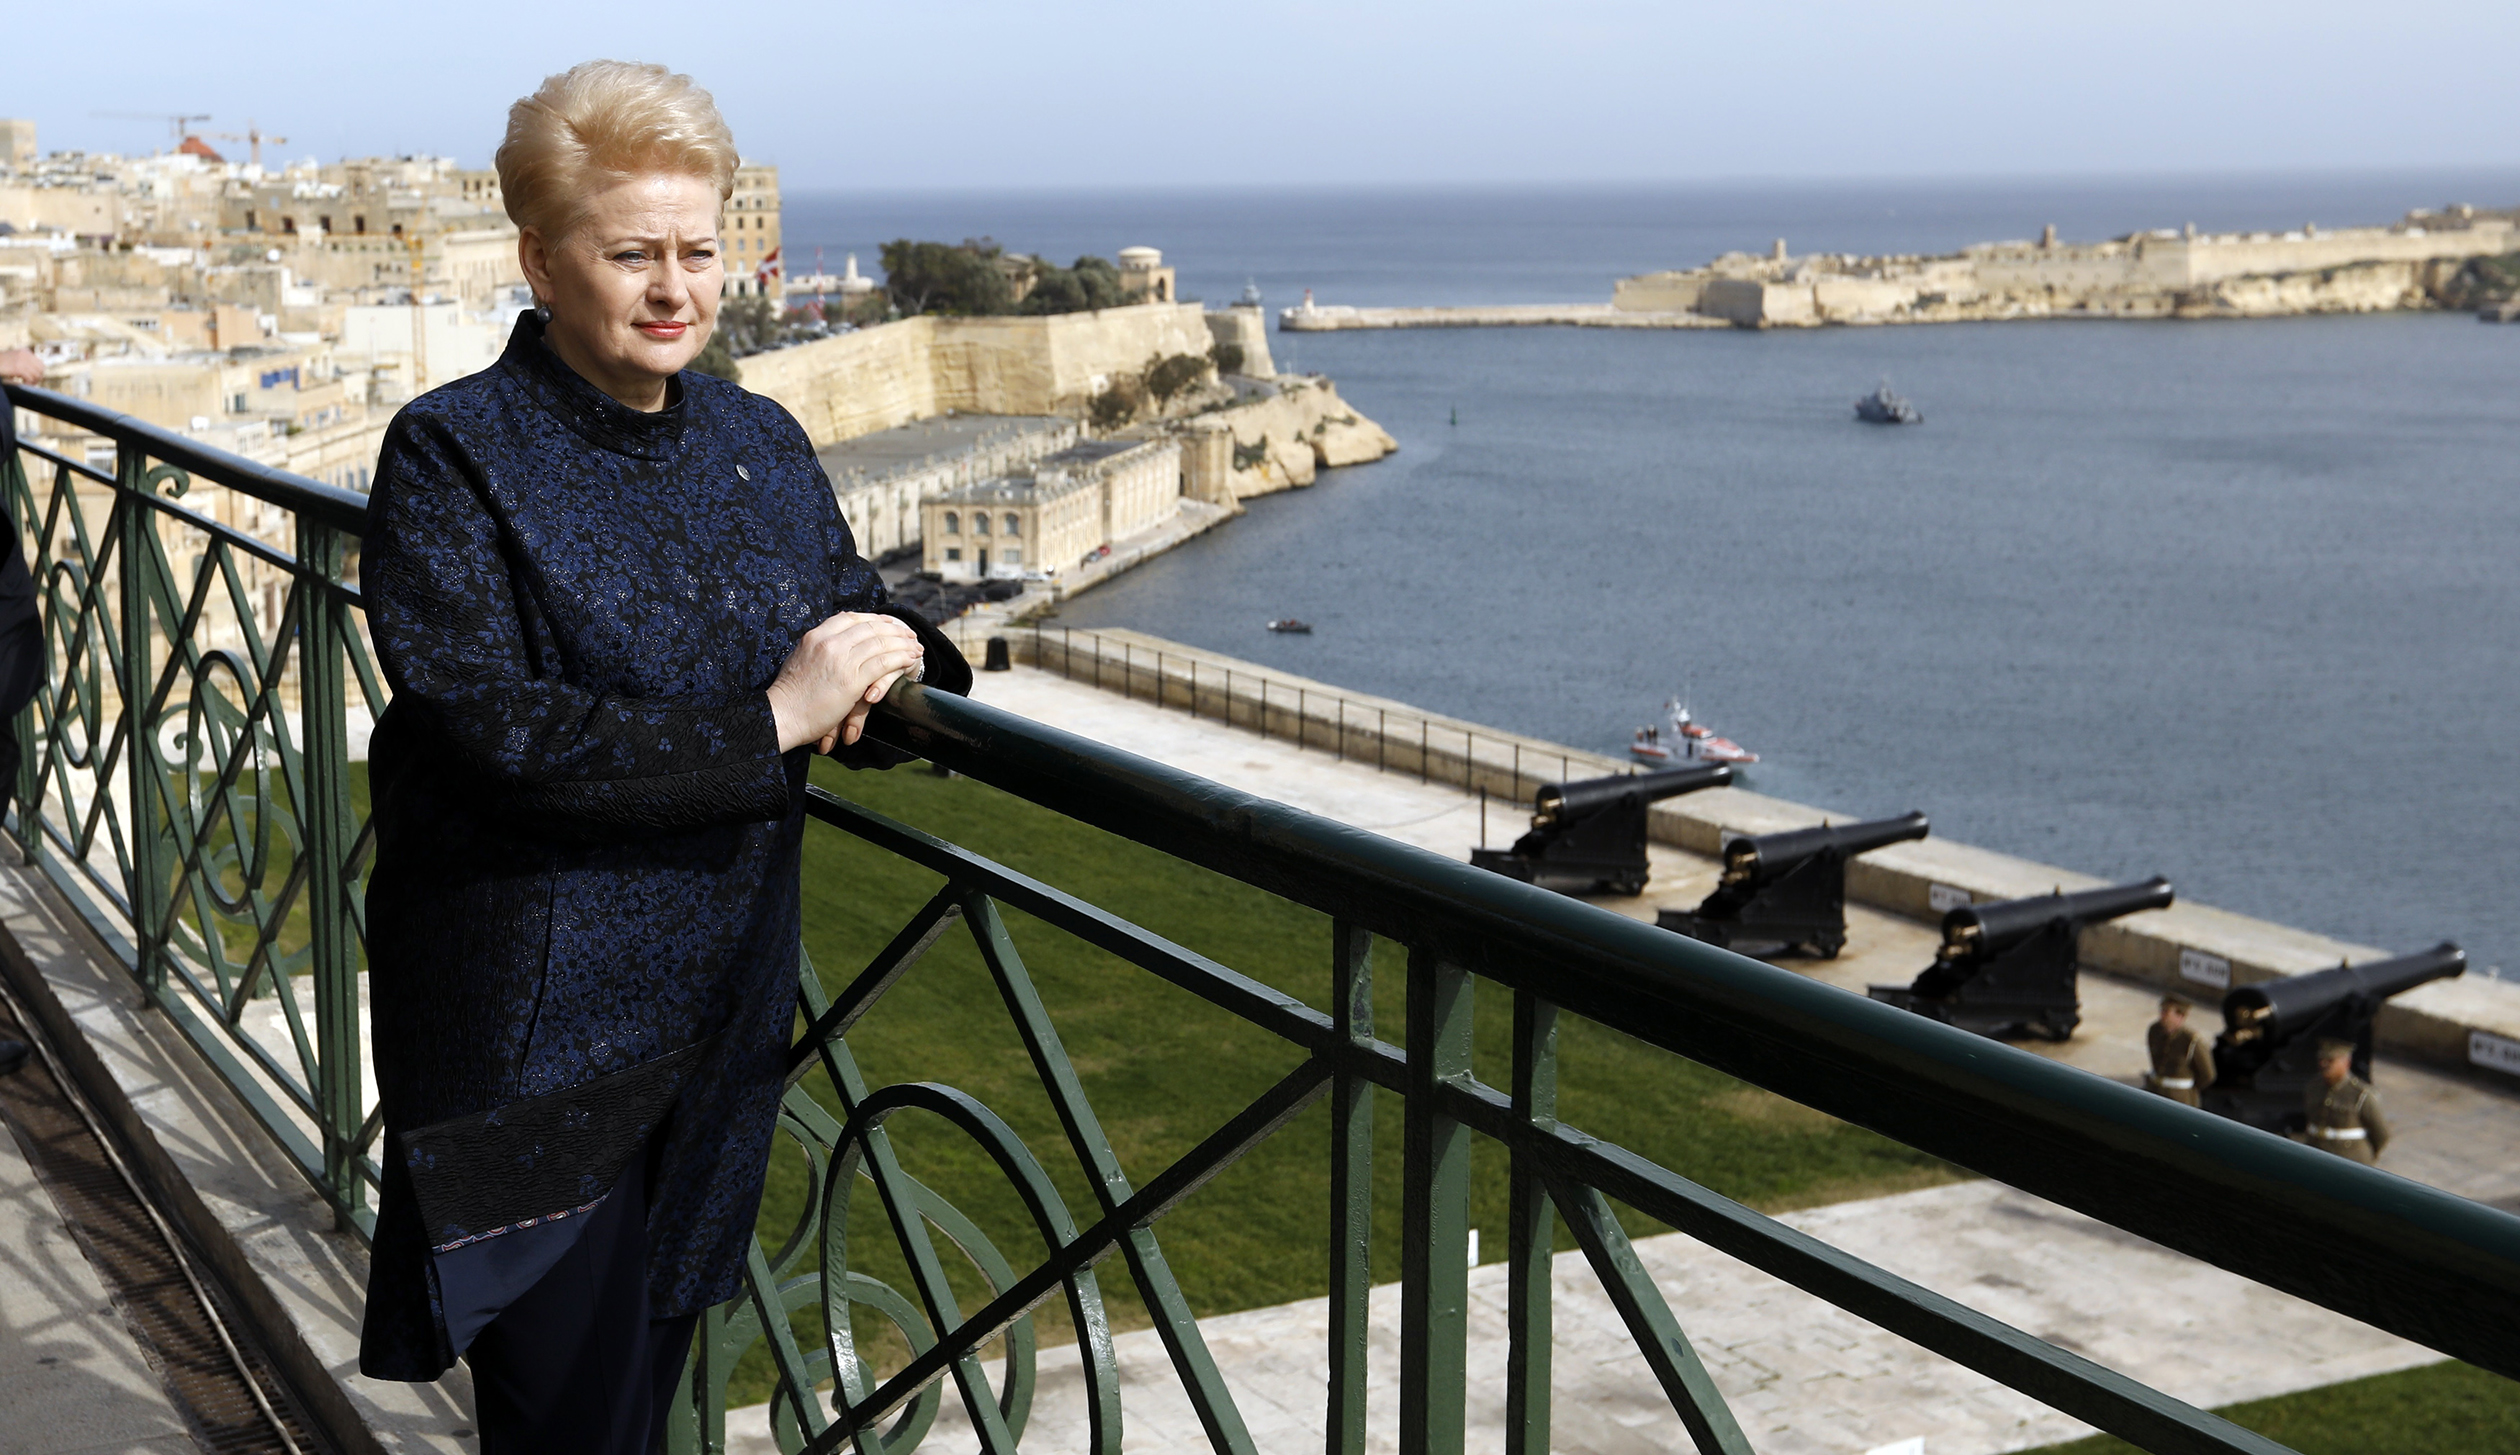 Lithuanian President Dalia Grybauskaite visits a vantage point overlooking Valletta during a break in the European Union leaders summit in Malta